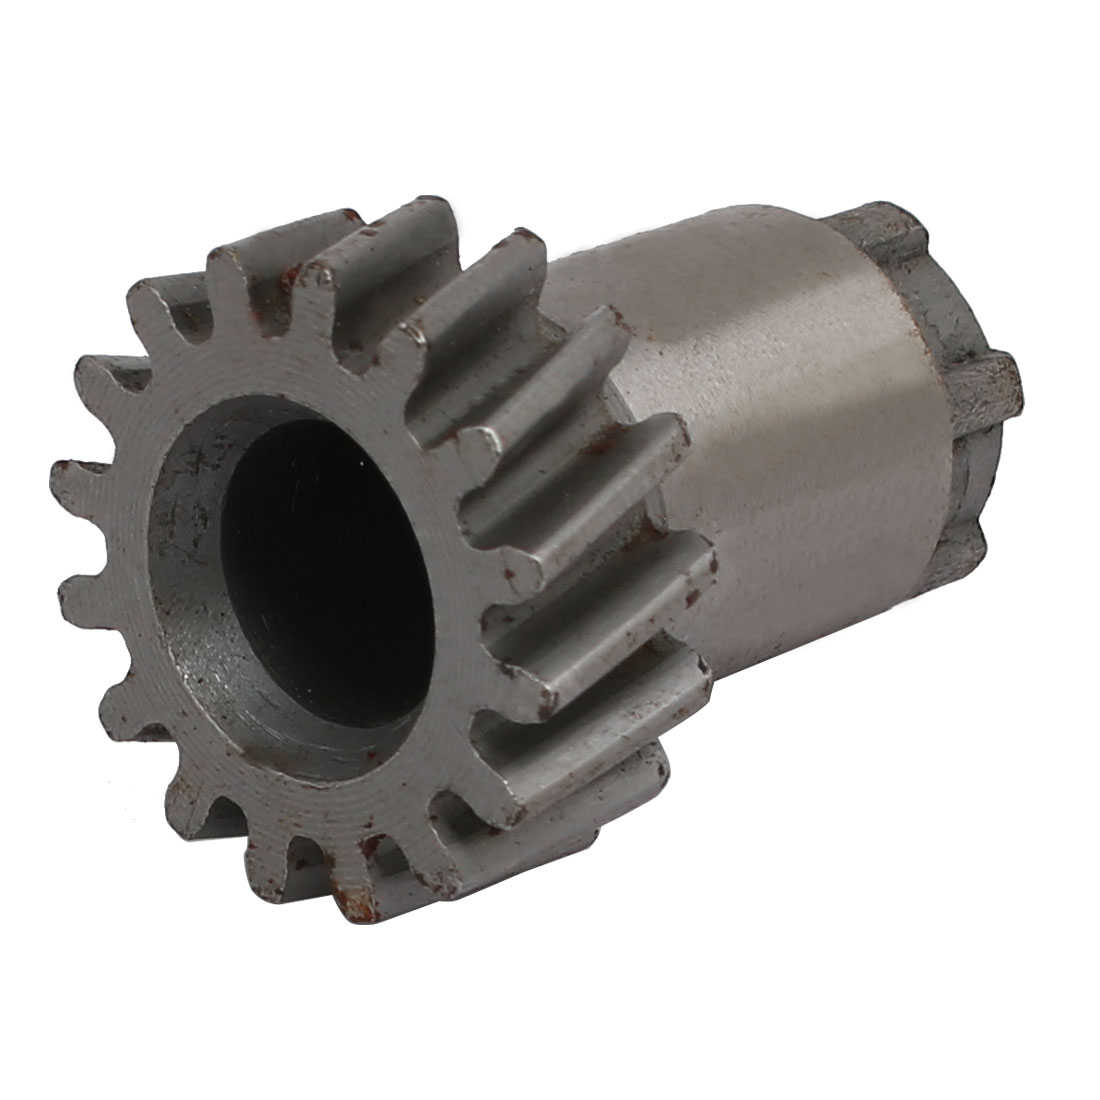 23mmx28mm 4 Tooth Spiral Bevel Gear Power Tool for Bosch GBH2-24 Hammer Drill